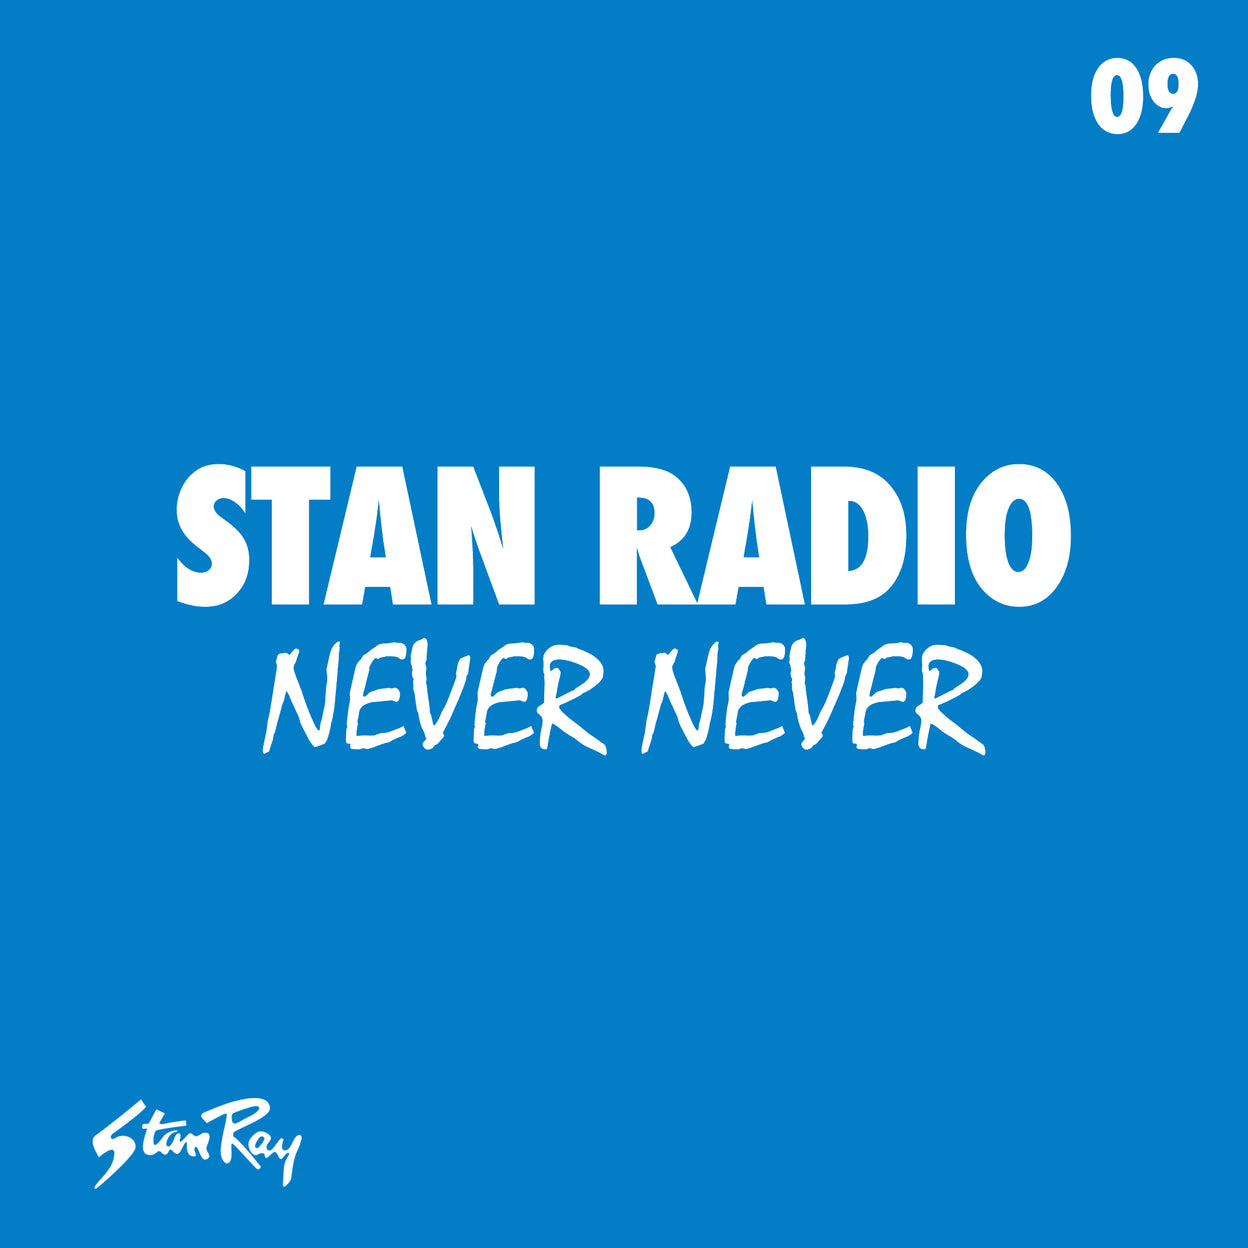 Stan Radio 09: Never Never